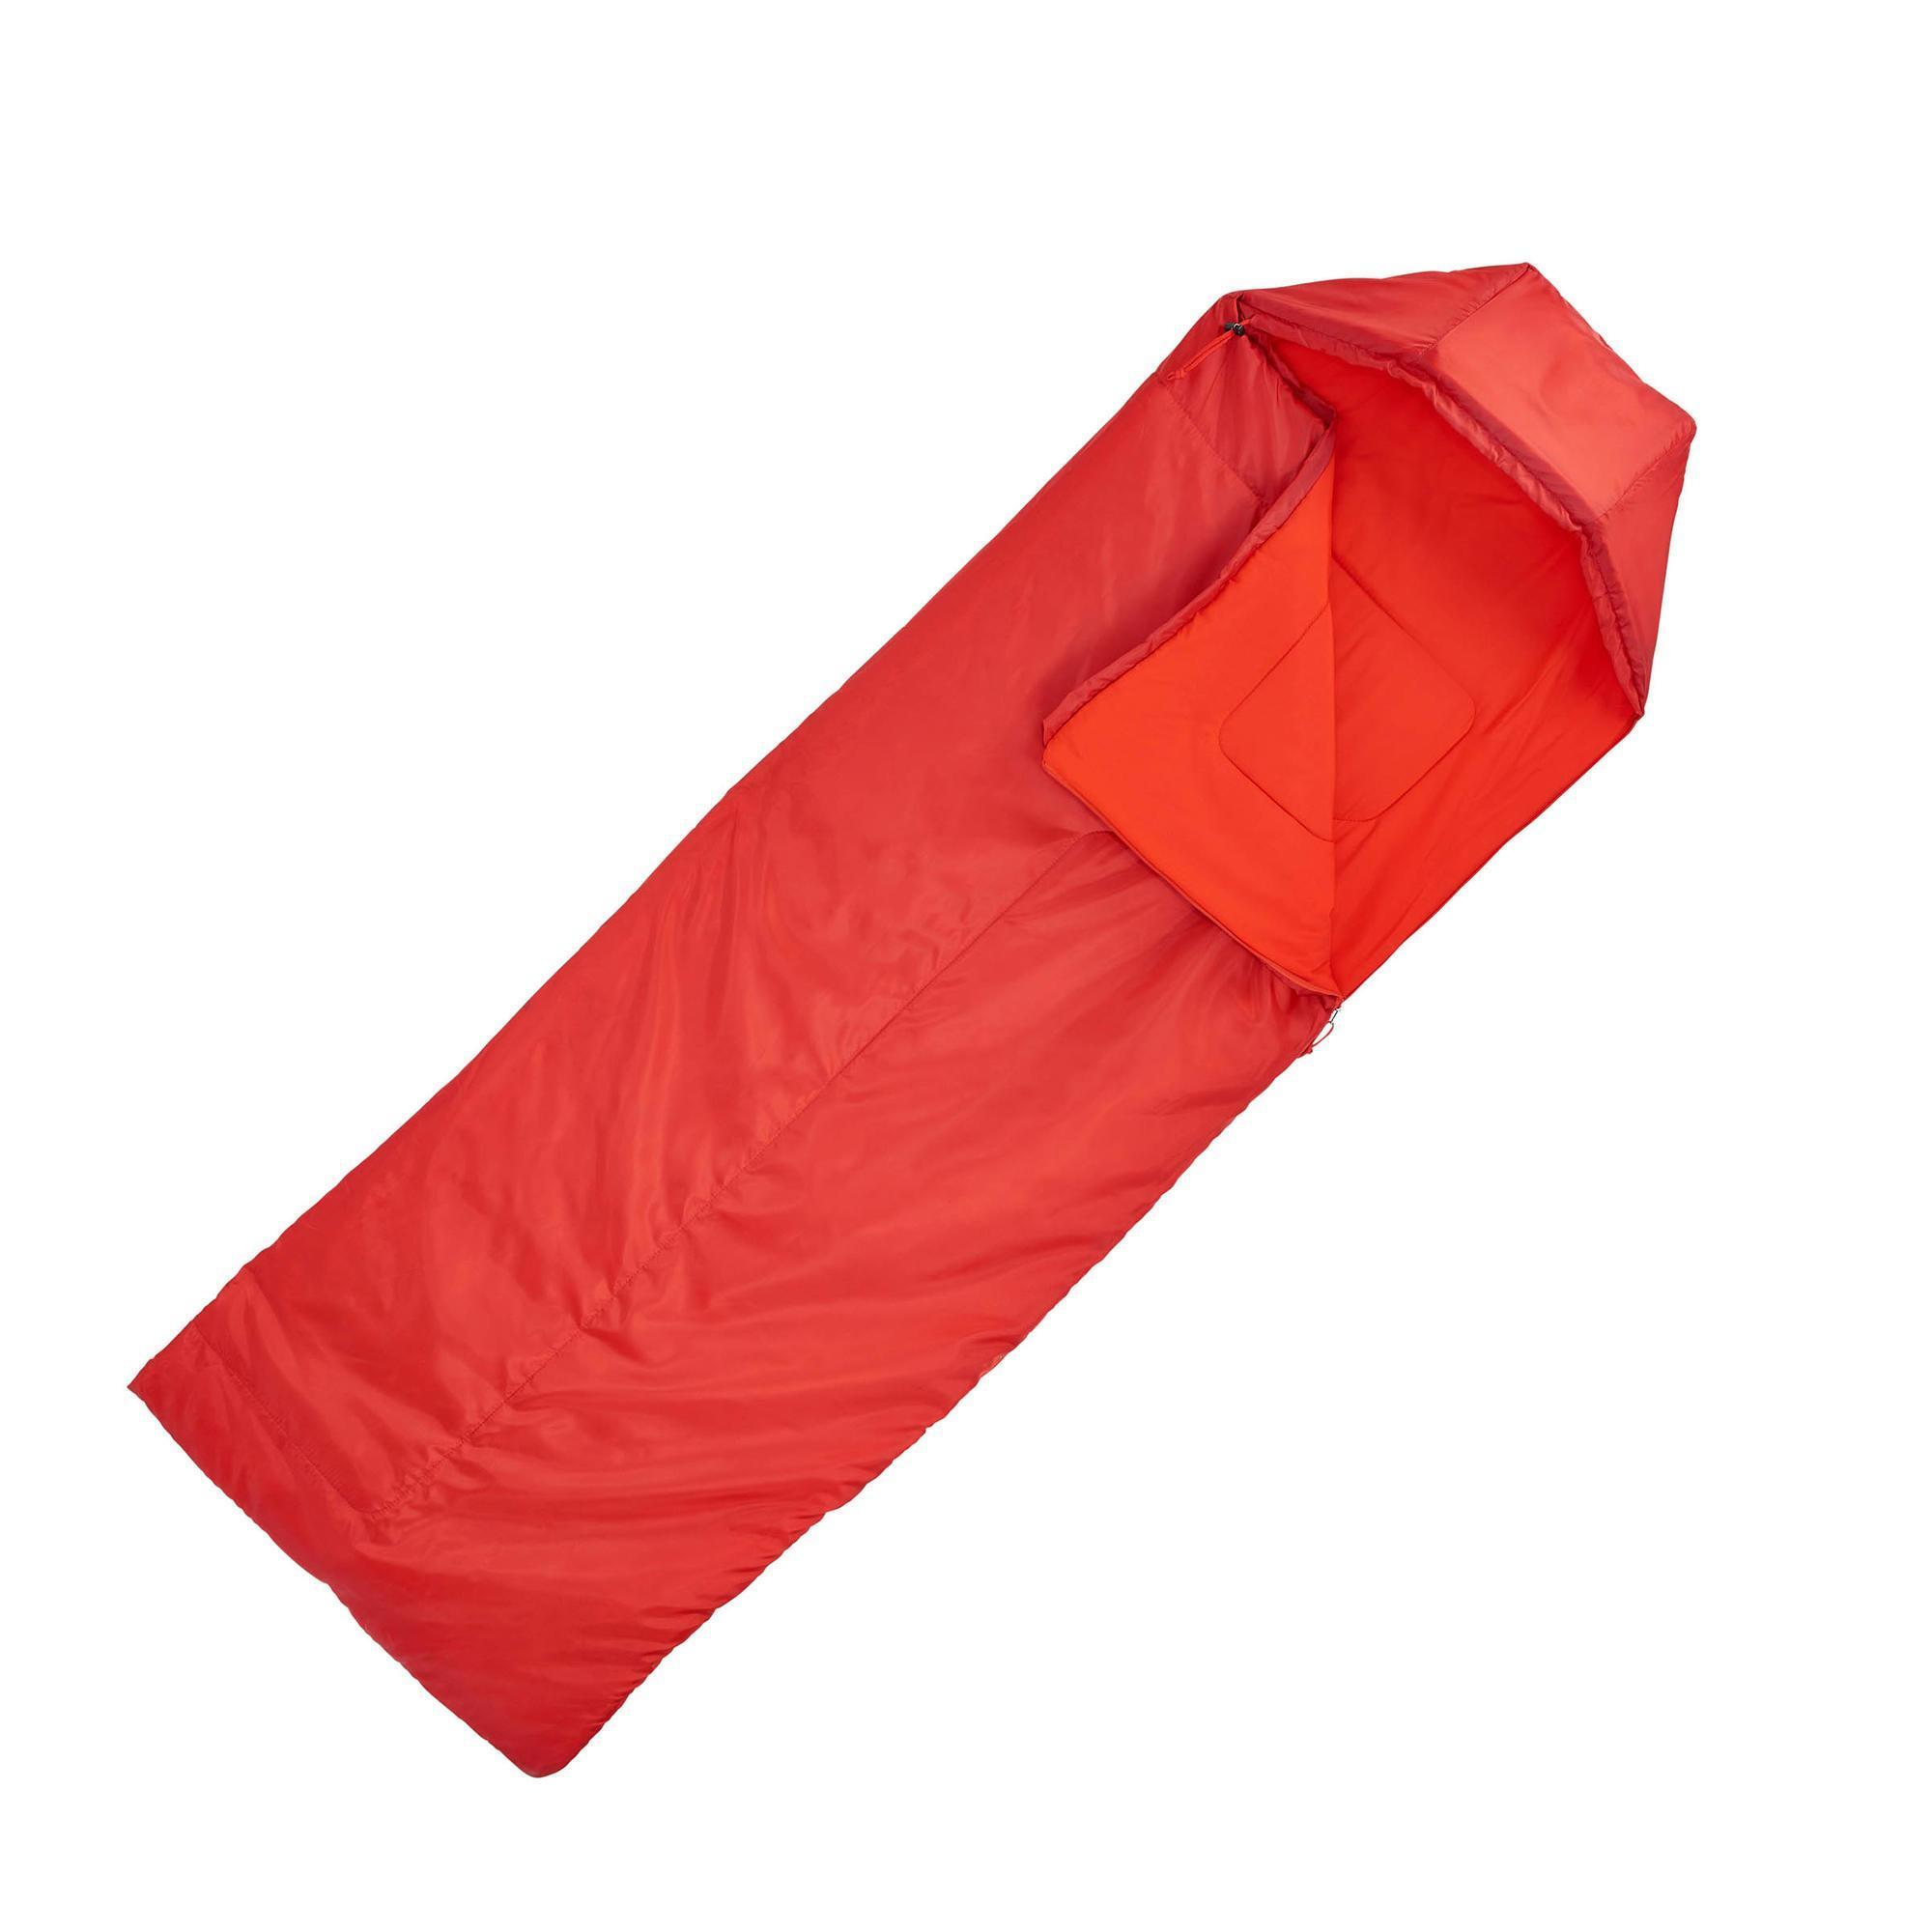 Forclaz 10 Bivouacking Hiking Trekking Sleeping Bag